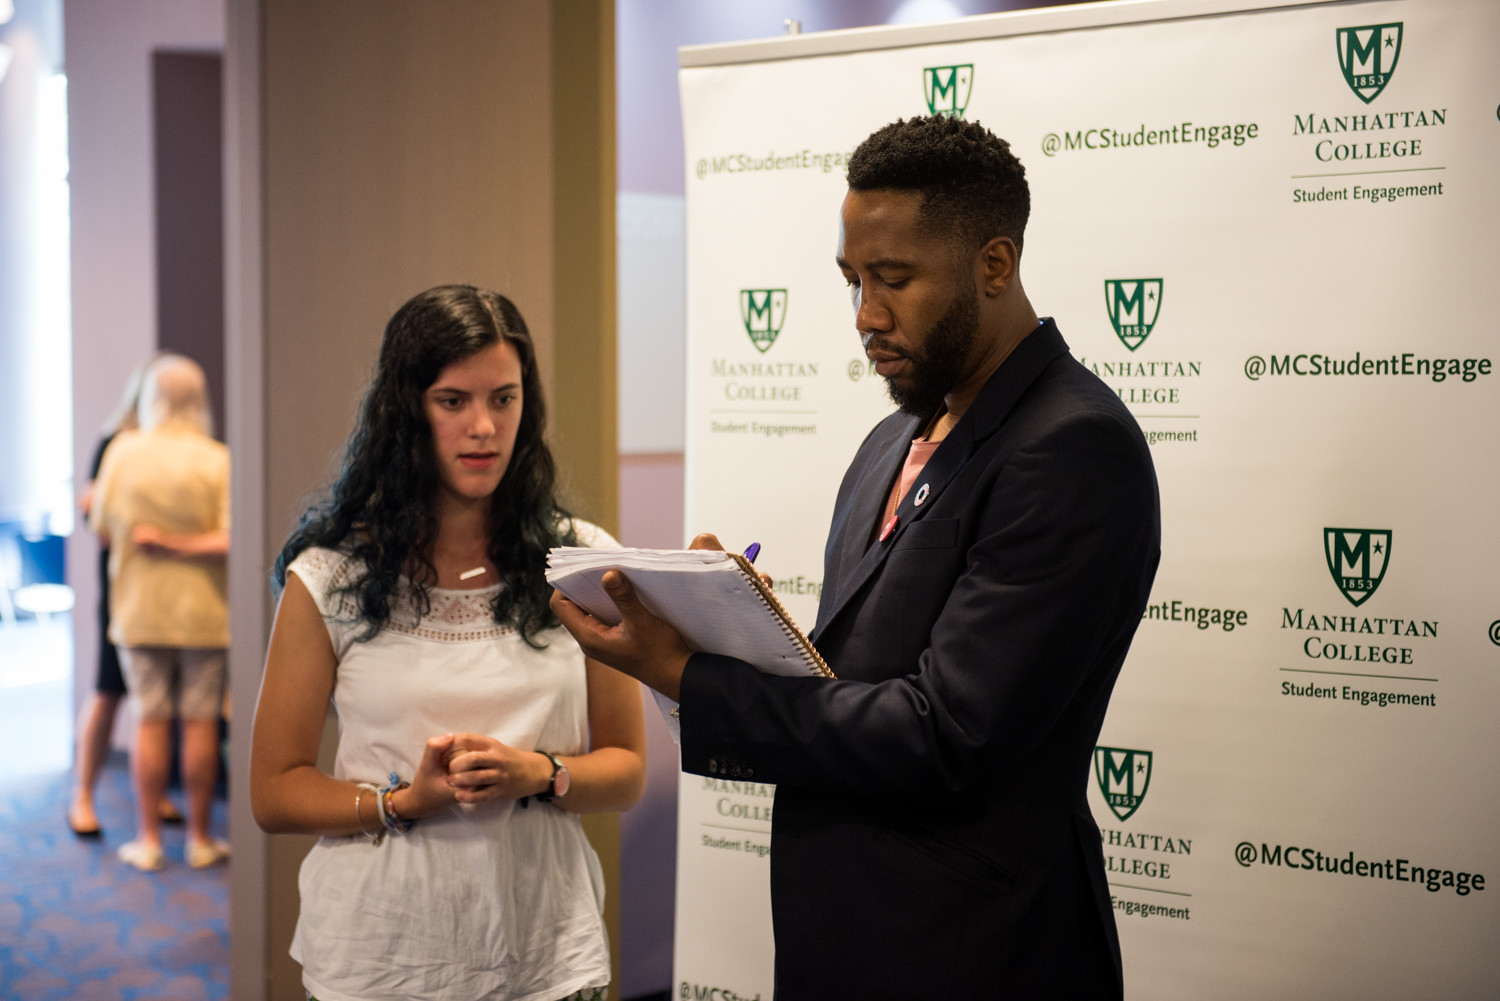 Ndaba Mandela, the grandson of Nelson Mandela, signs an autograph following his talk at Manhattan College.